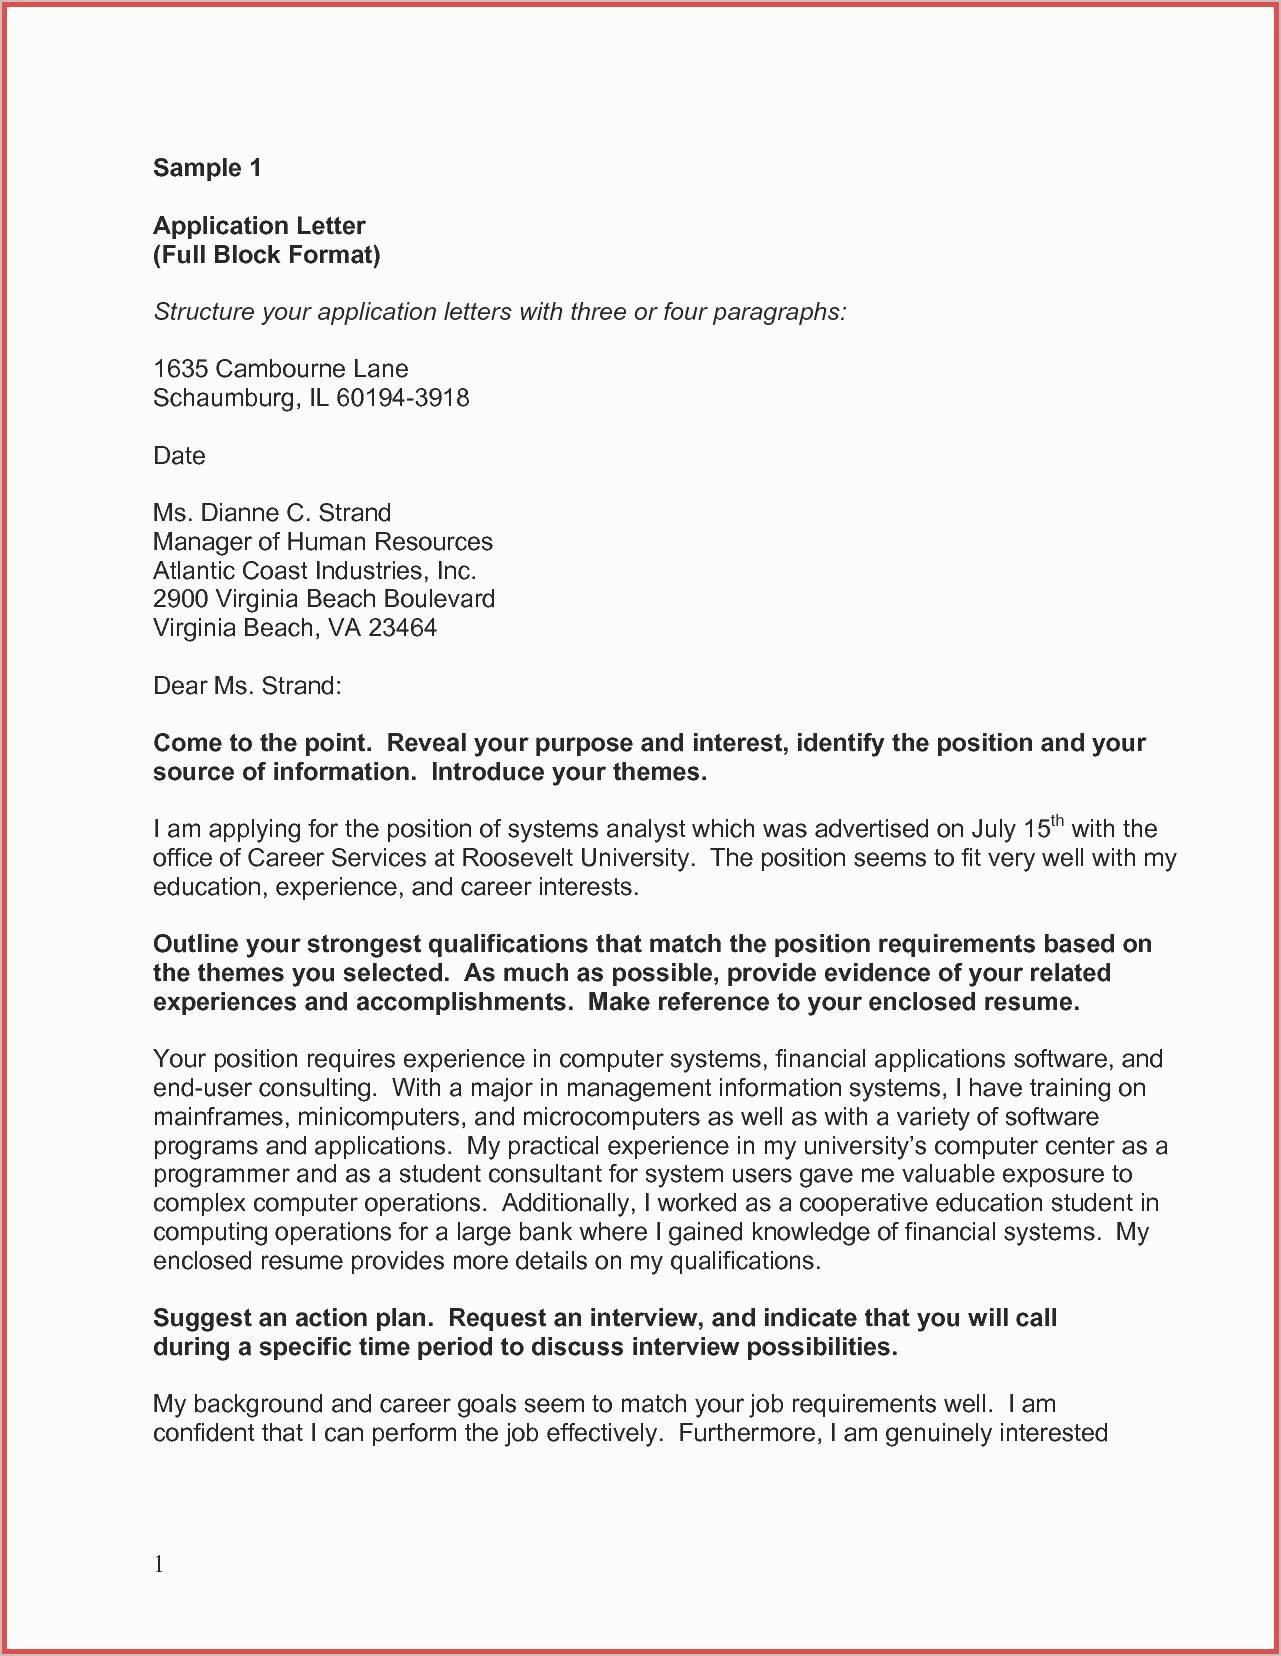 Scholarship Letter Of Recommendation Template - Lovely Letter Re Mendation for Scholarship Template